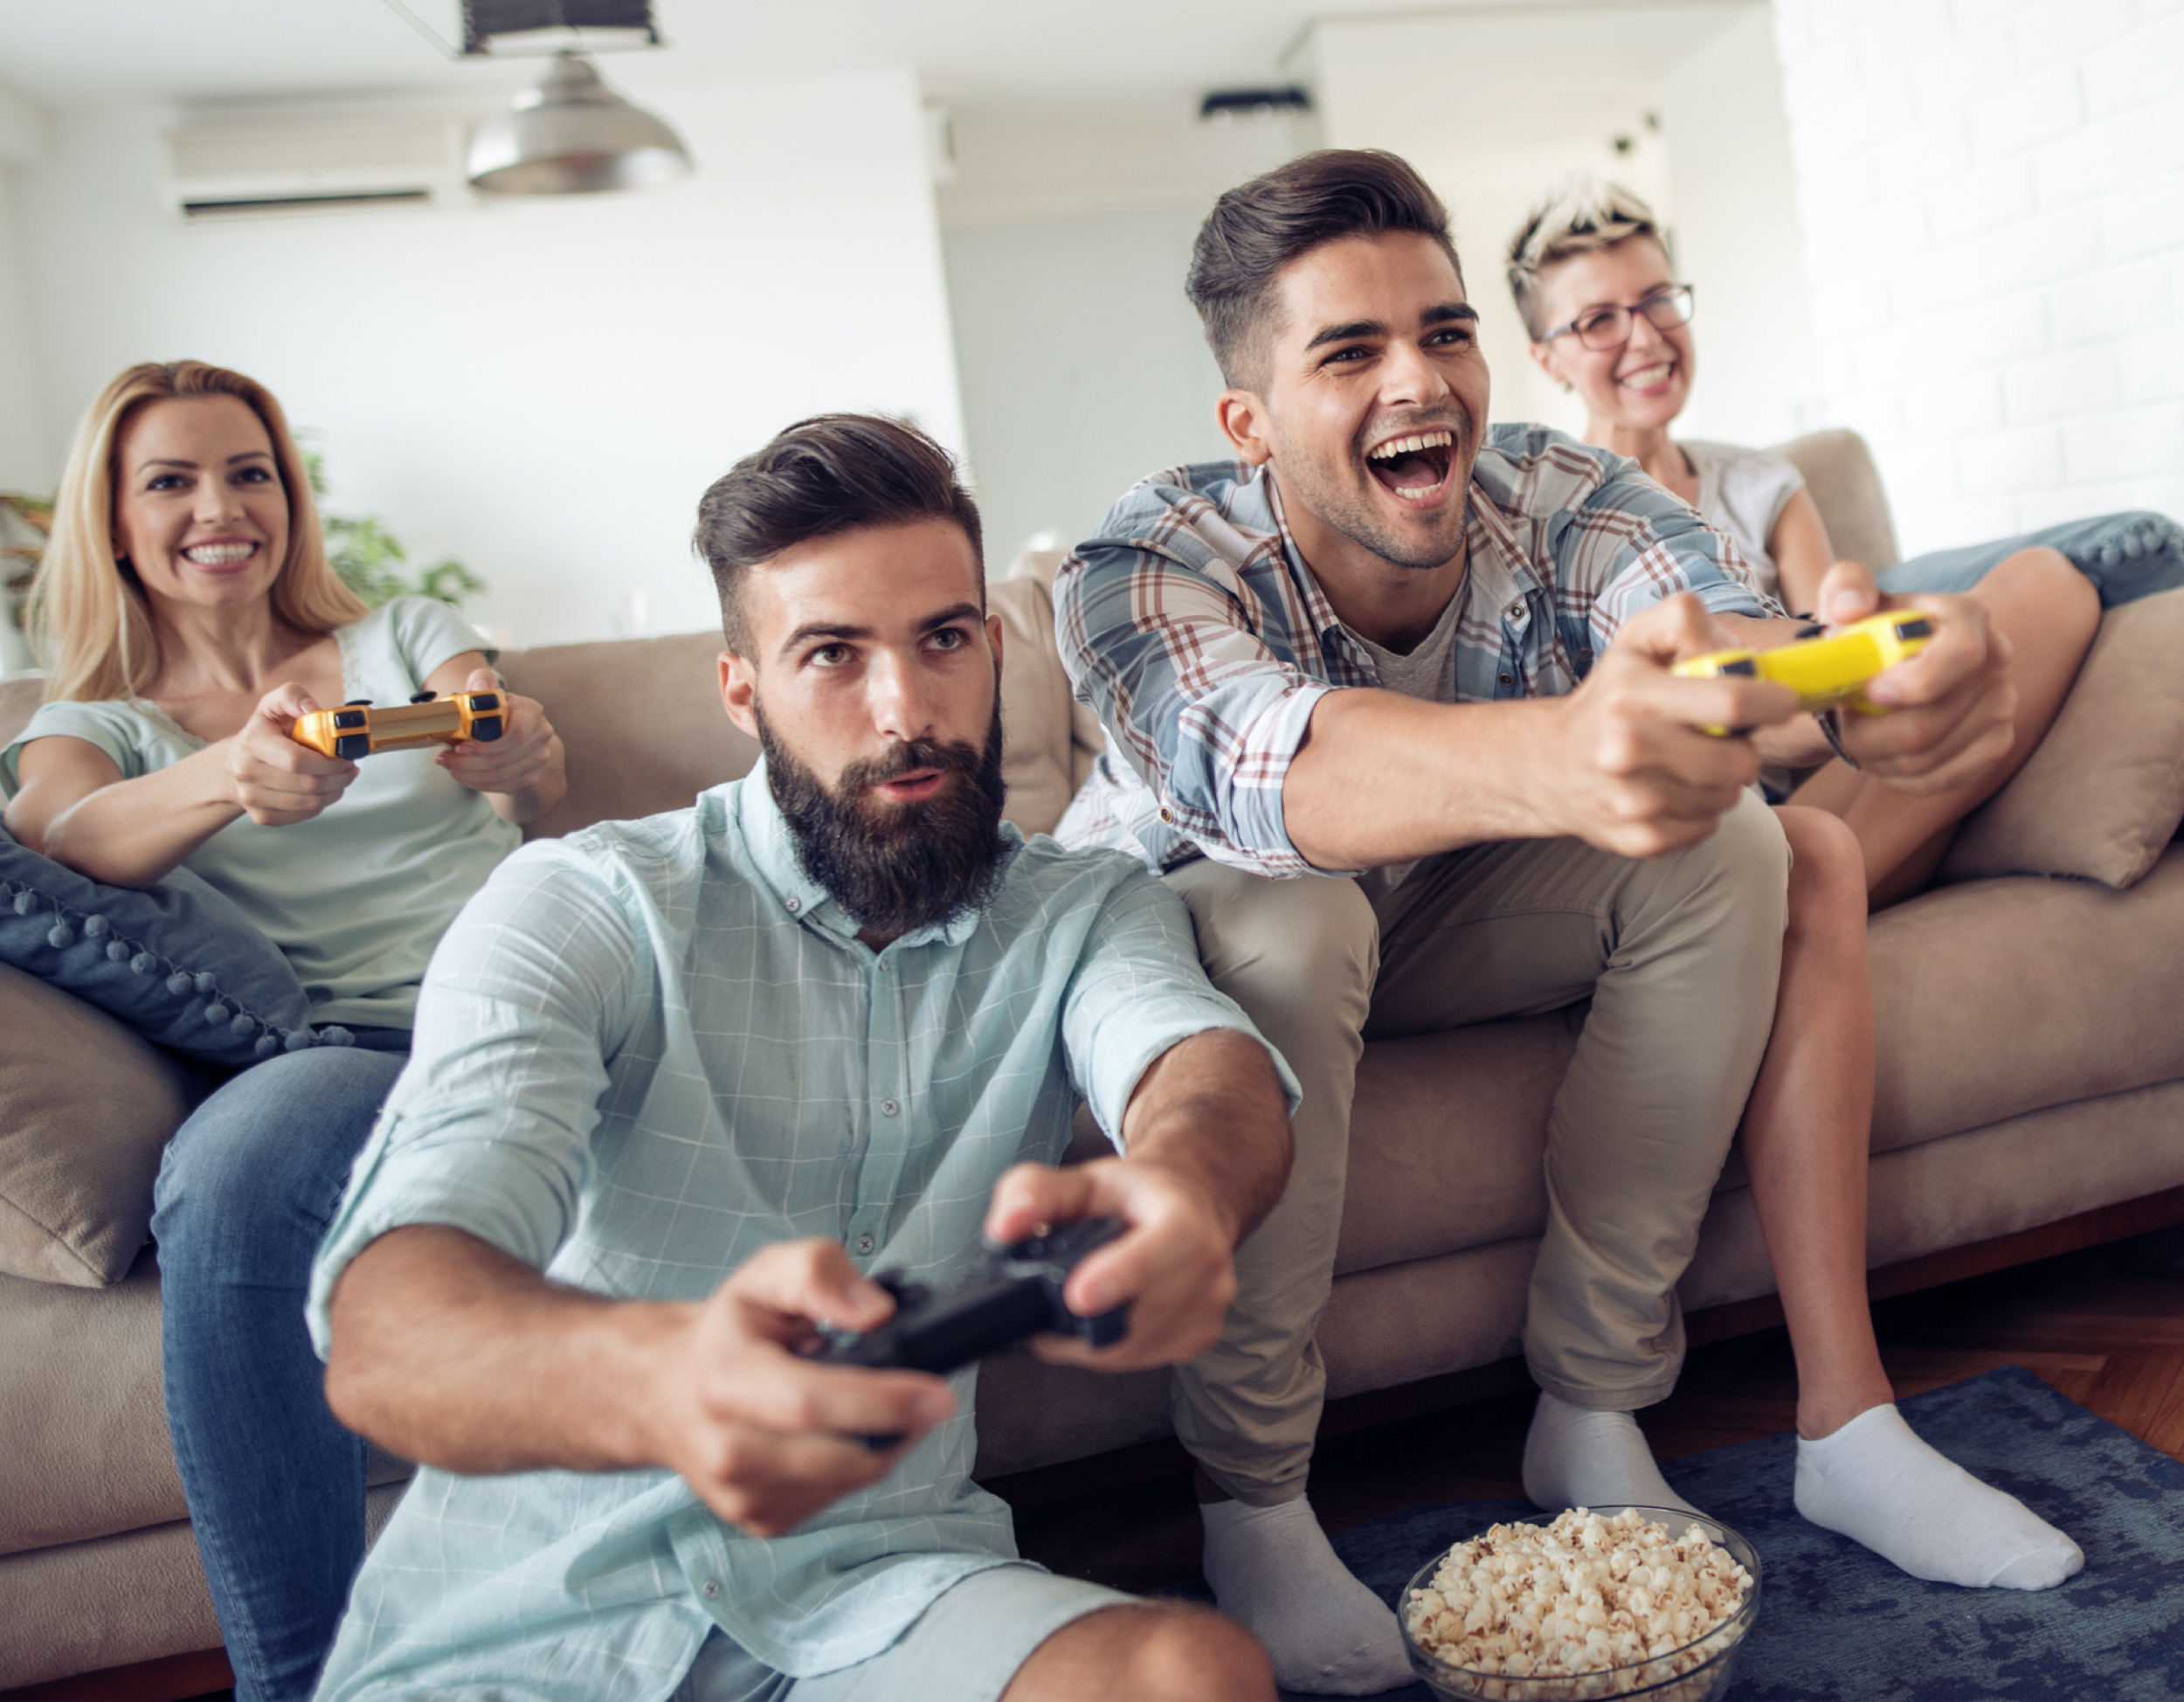 Friends playing video games together on a couch at home.